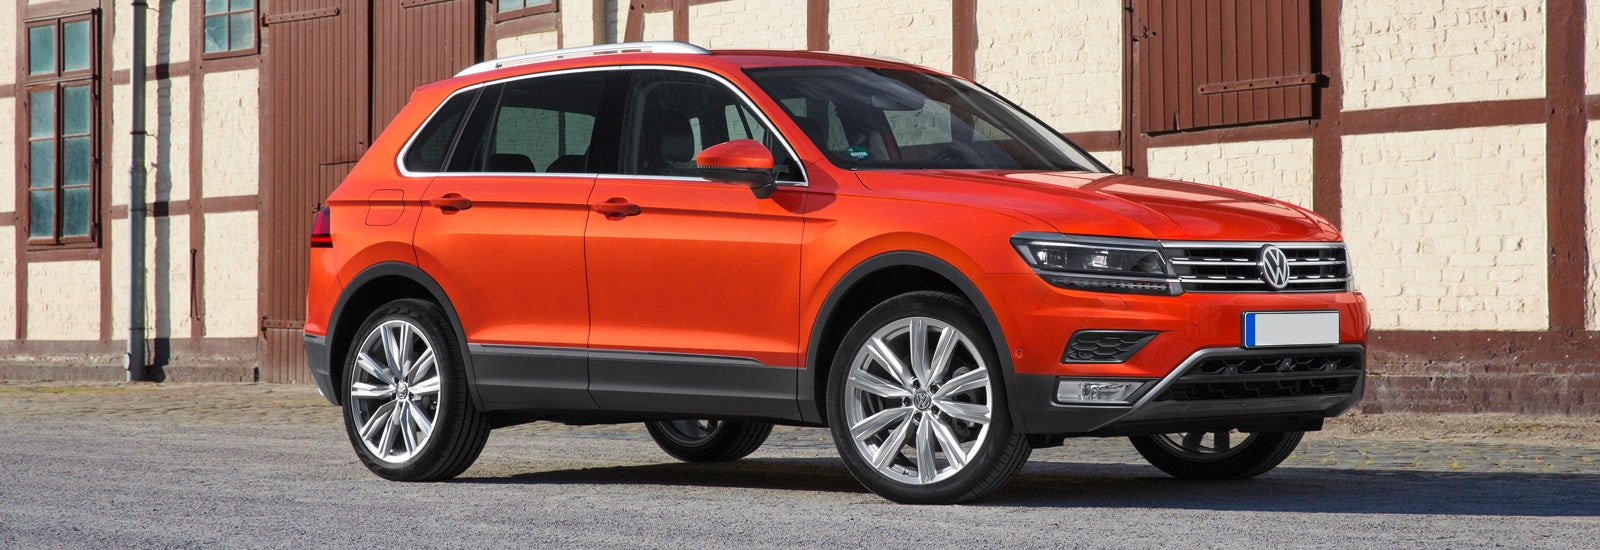 2008 10best cars 10best cars page 2 car and driver - 2 Vw Tiguan